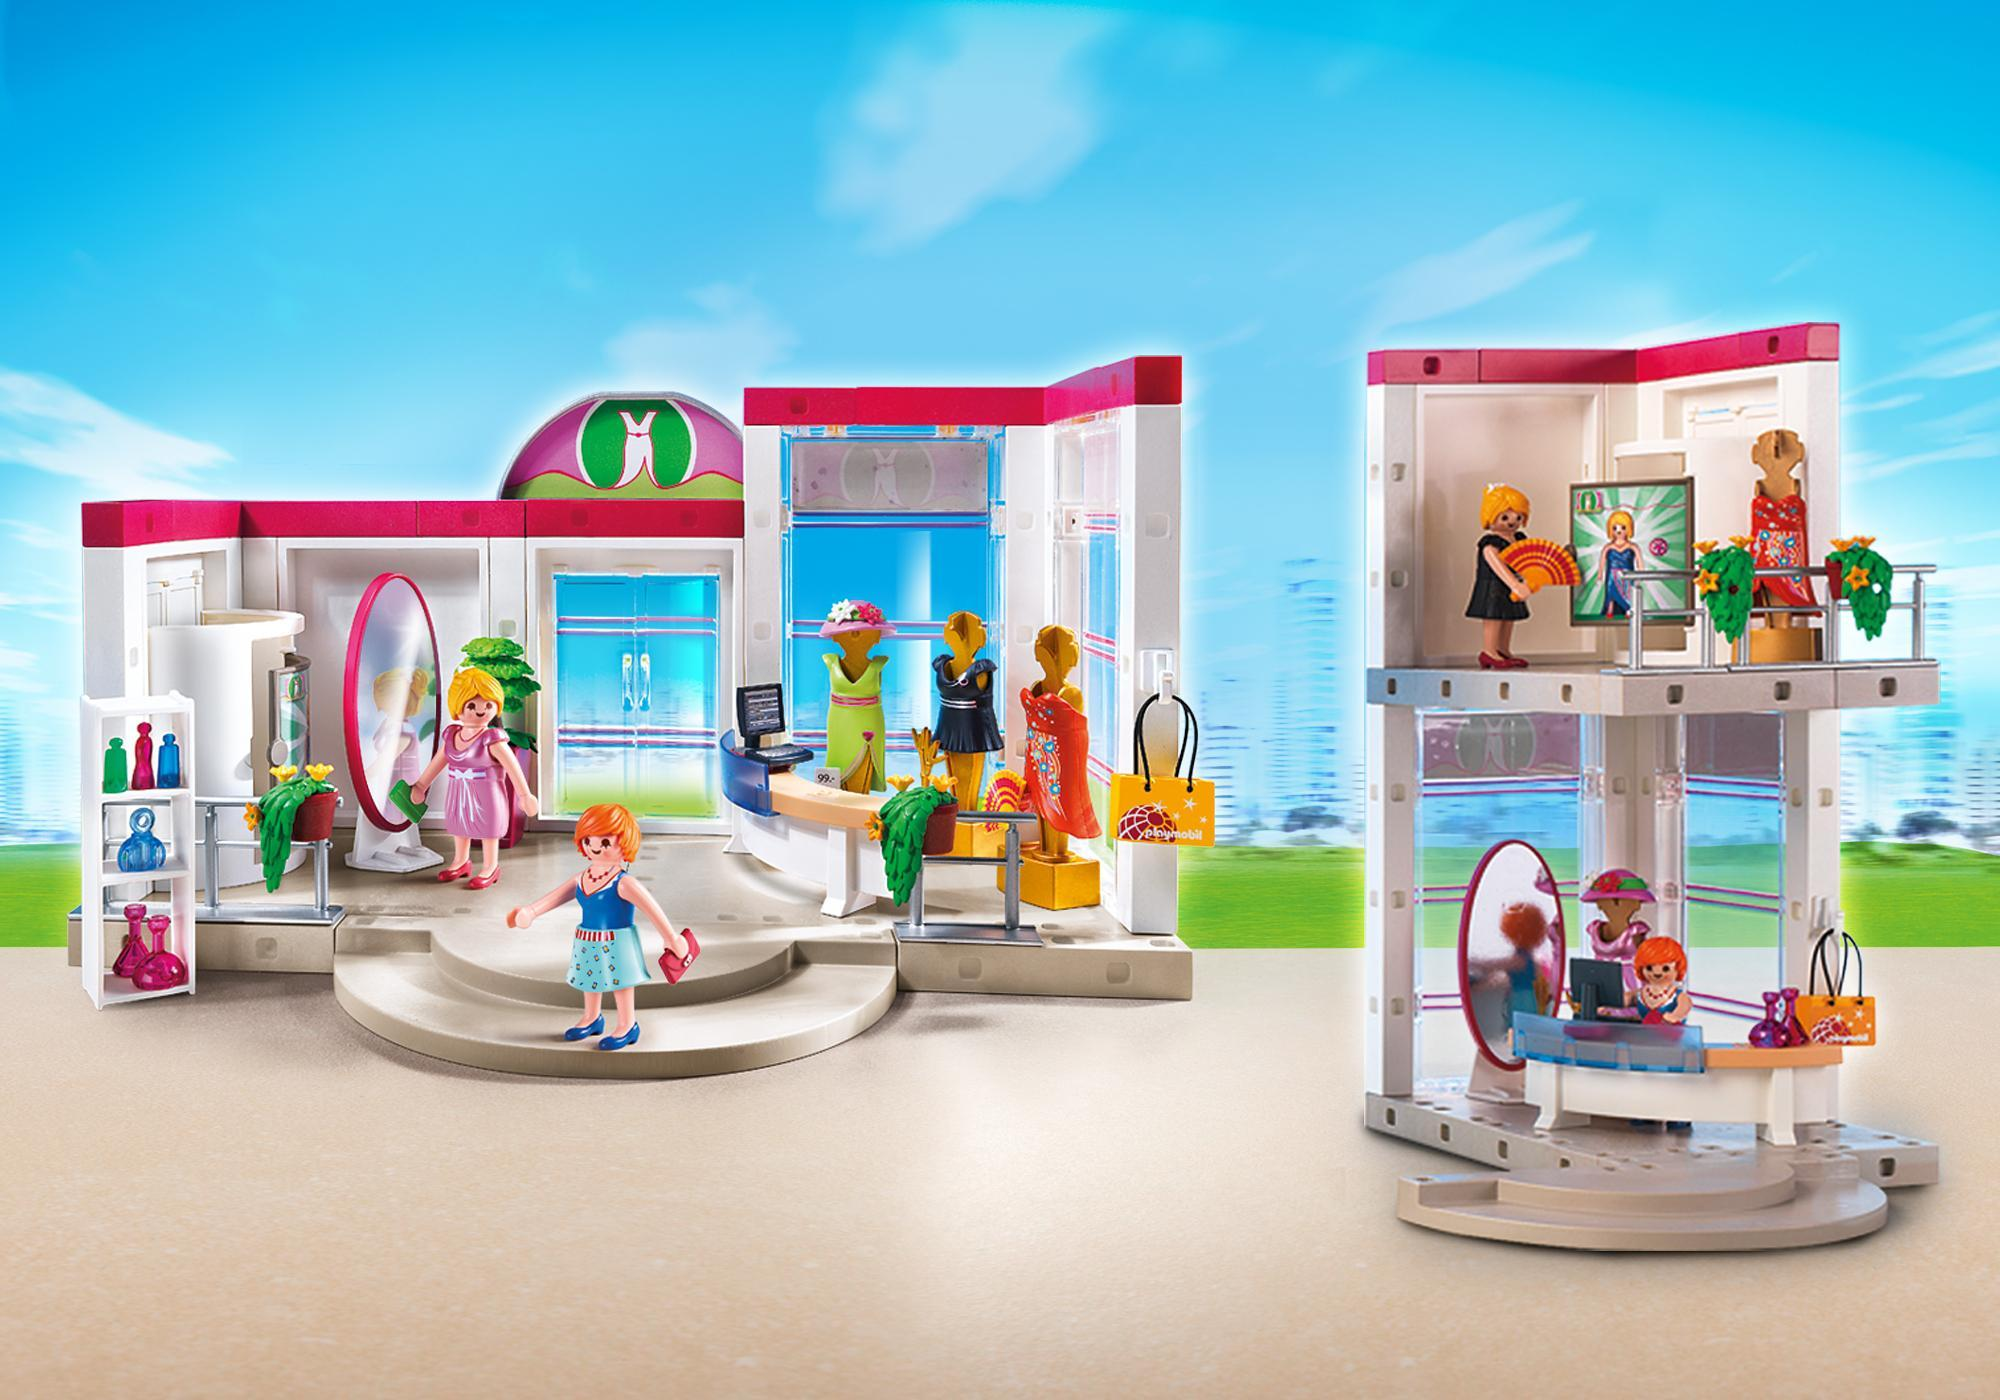 Dimension Cabine D Essayage Boutique De Vêtements 5486 Playmobil France